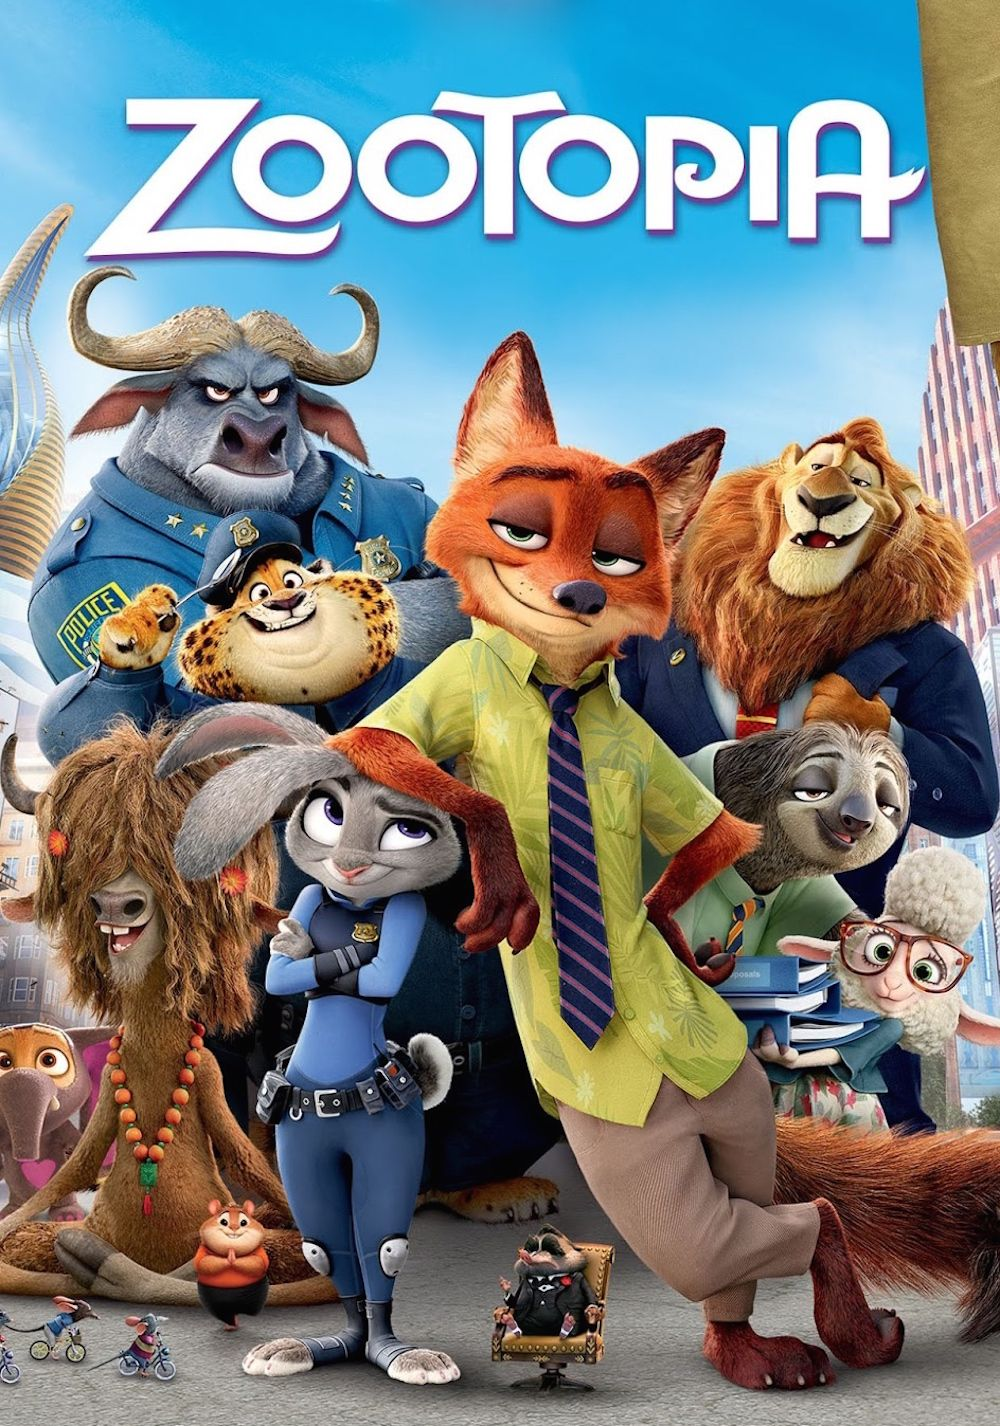 Movie Review Zootropolis Filmes De Animacao Zootopia 2016 Disney Fofa